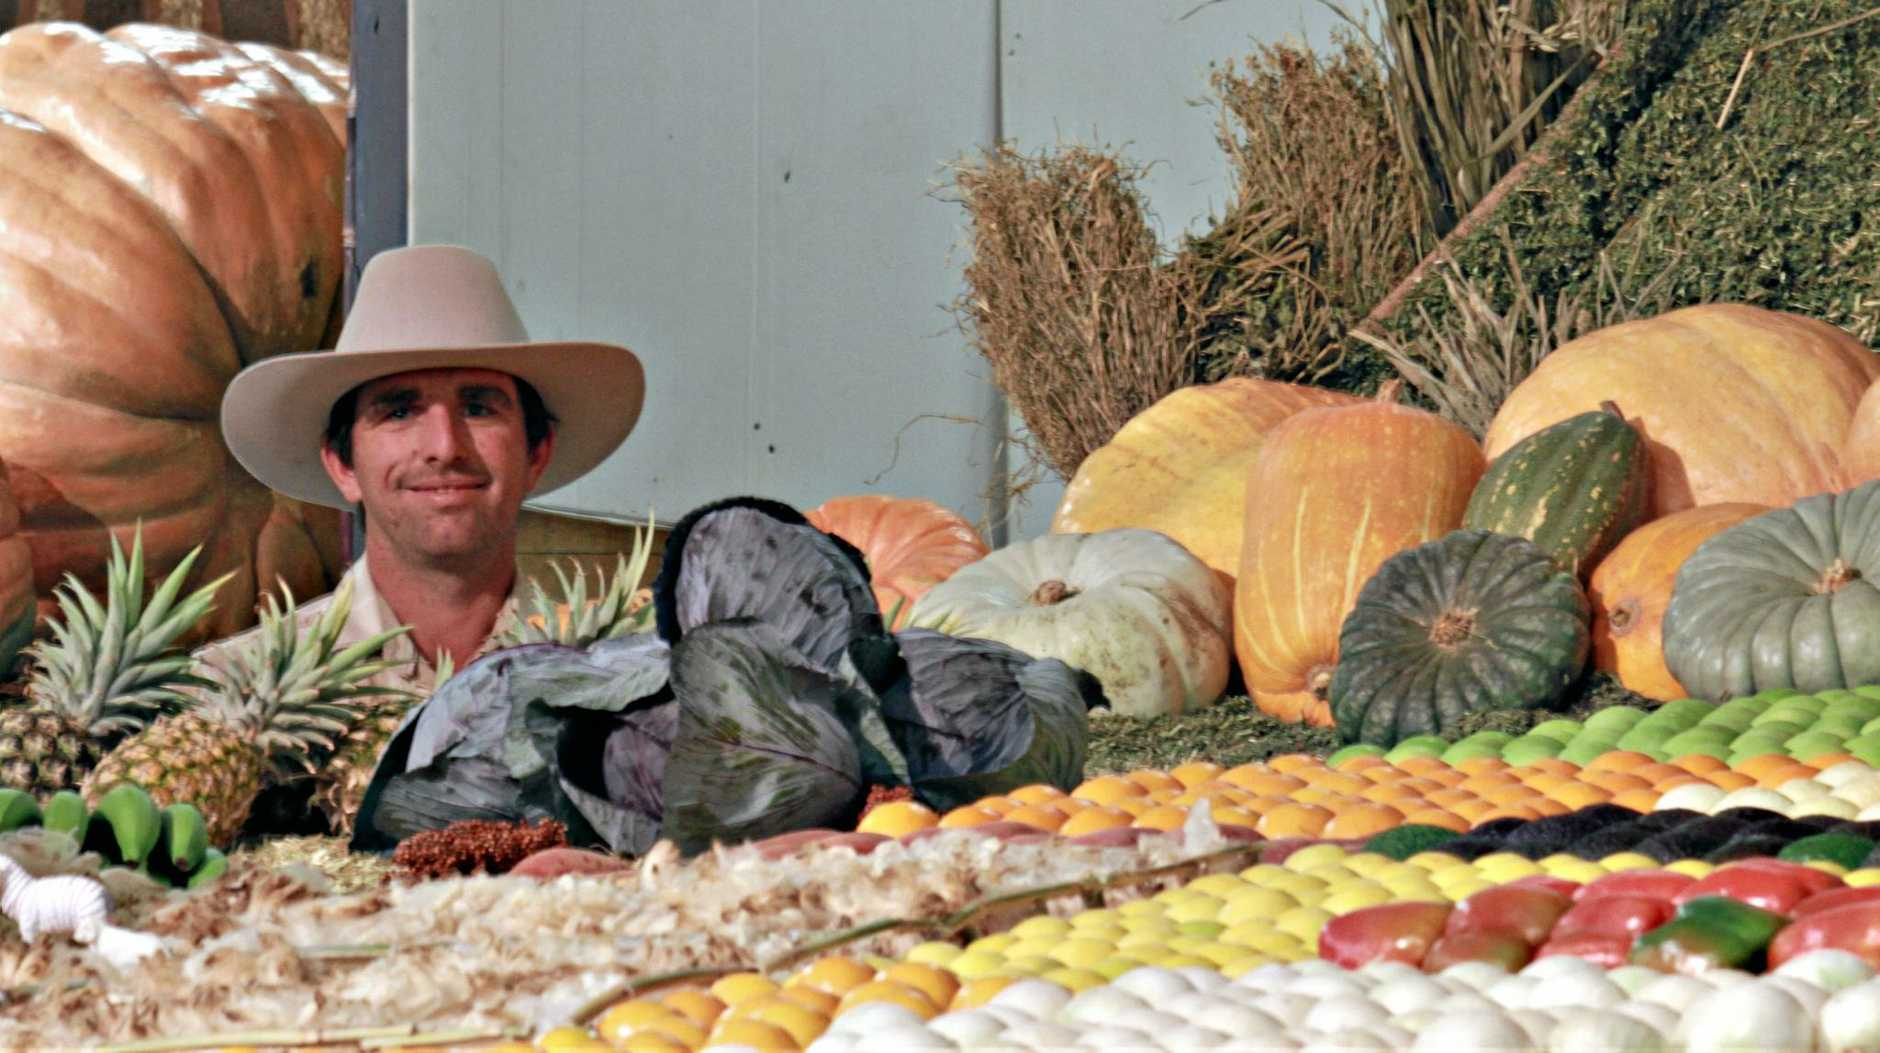 Darling Downs District Exhibit volunteer Jonathan Fawkes is teaching Ekka patrons about our region's produce.